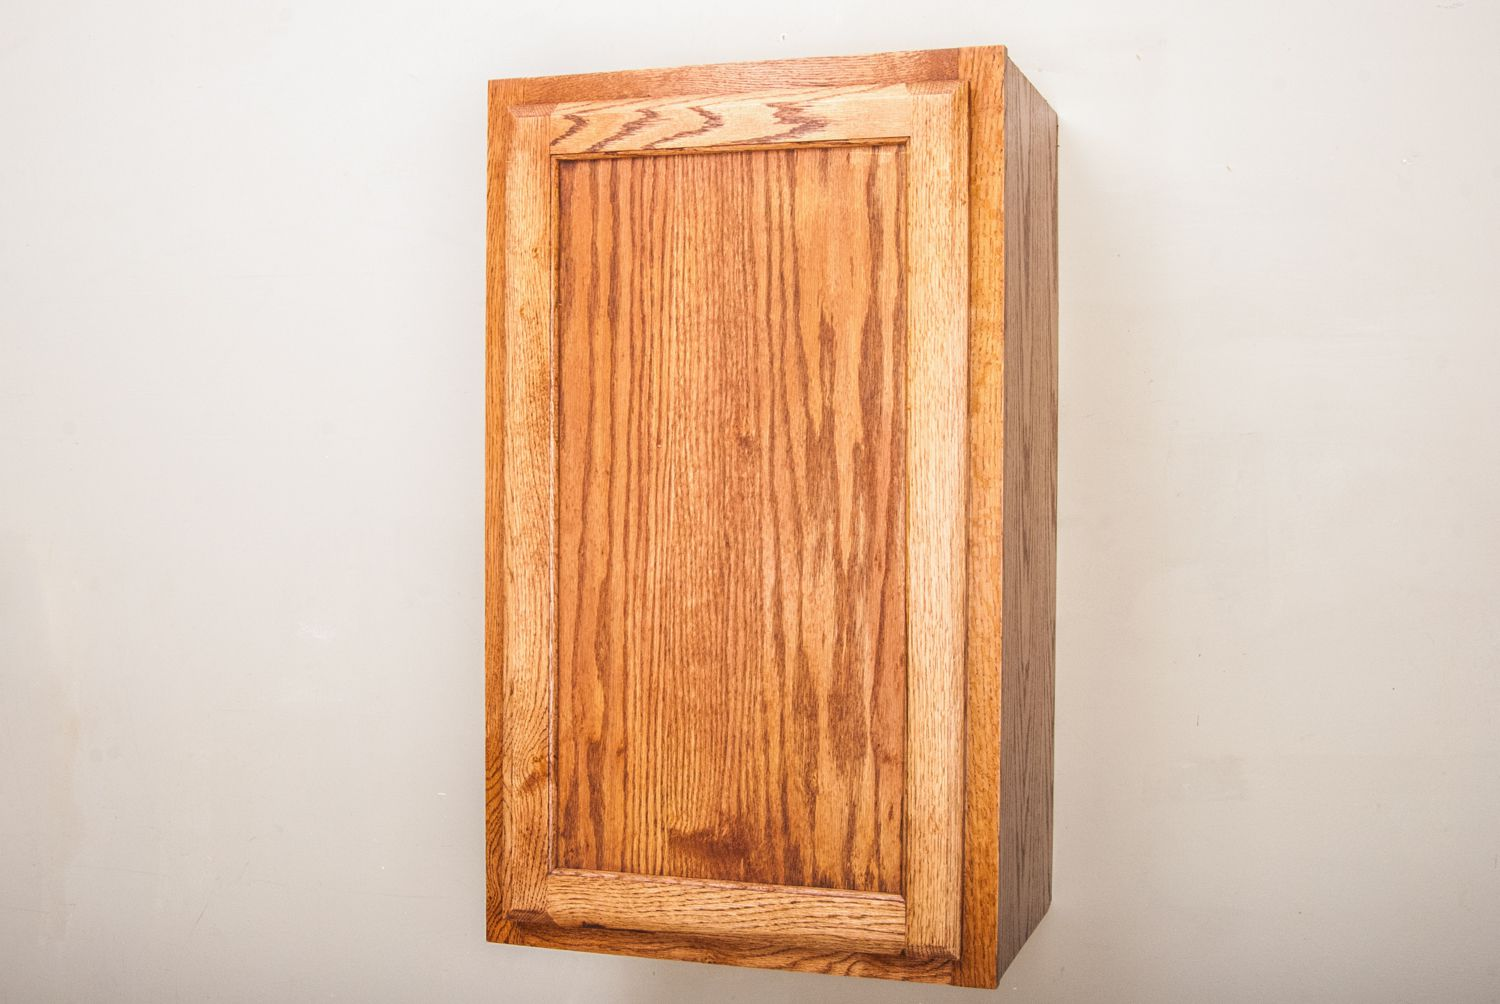 How To Stain And Finish Wood Cabinets